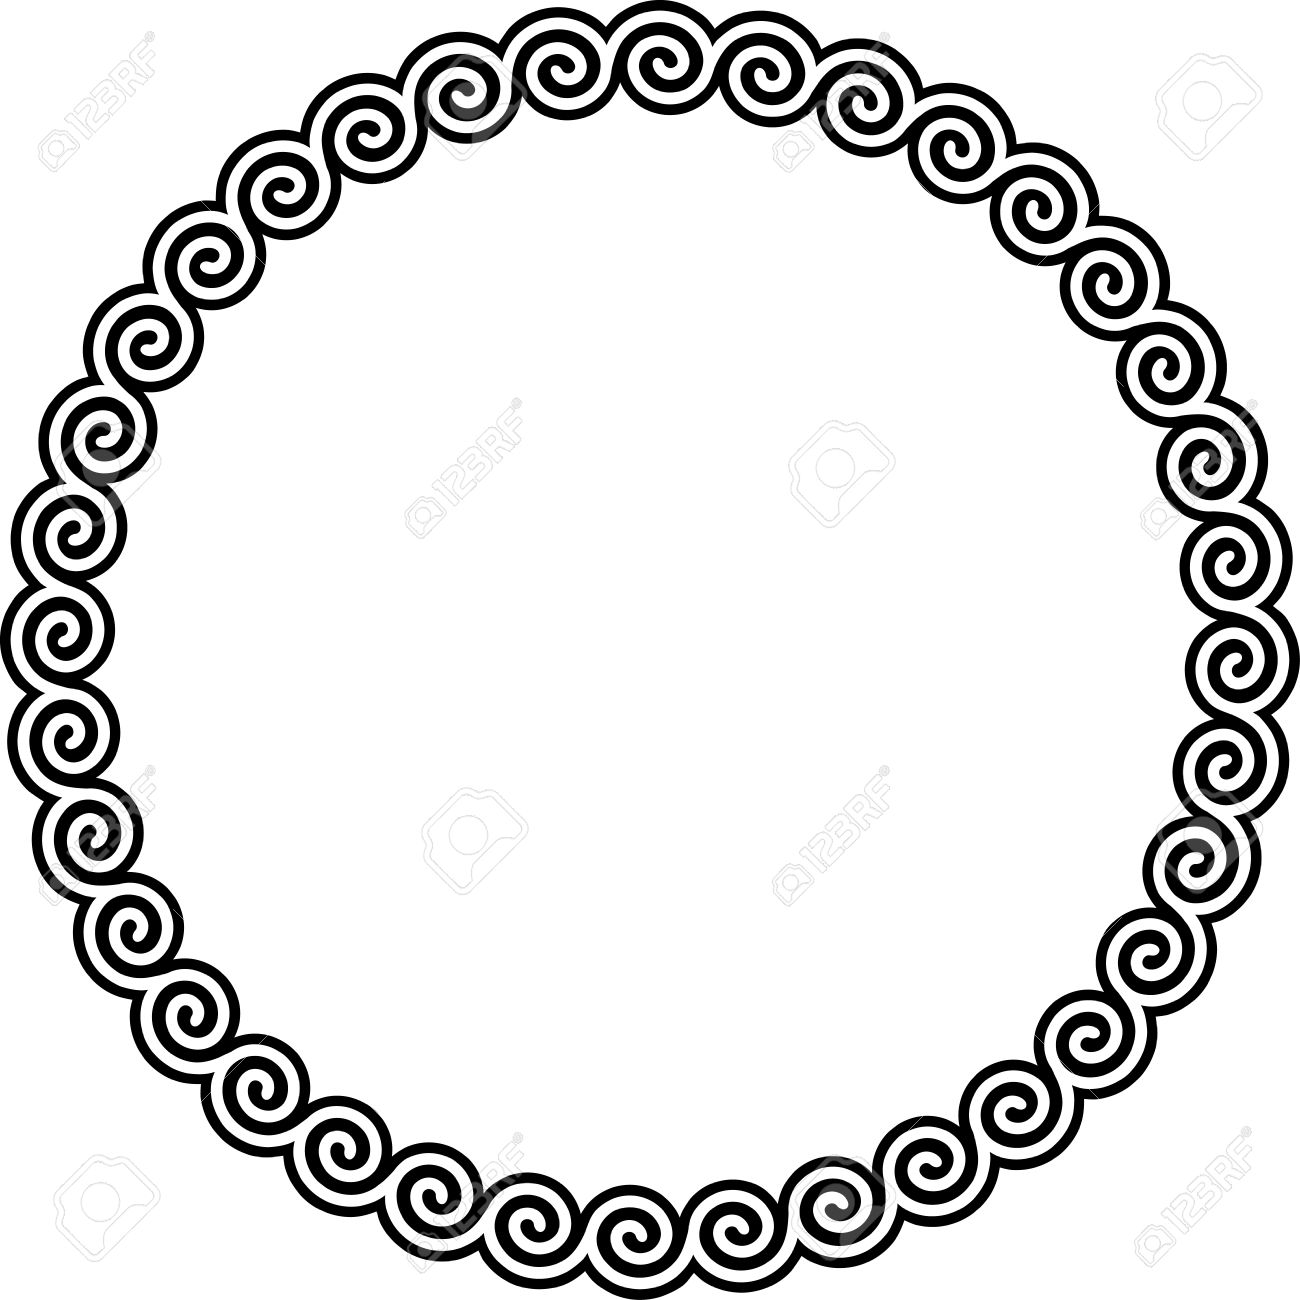 Round picture frame clipart image free Round frame clipart » Clipart Station image free